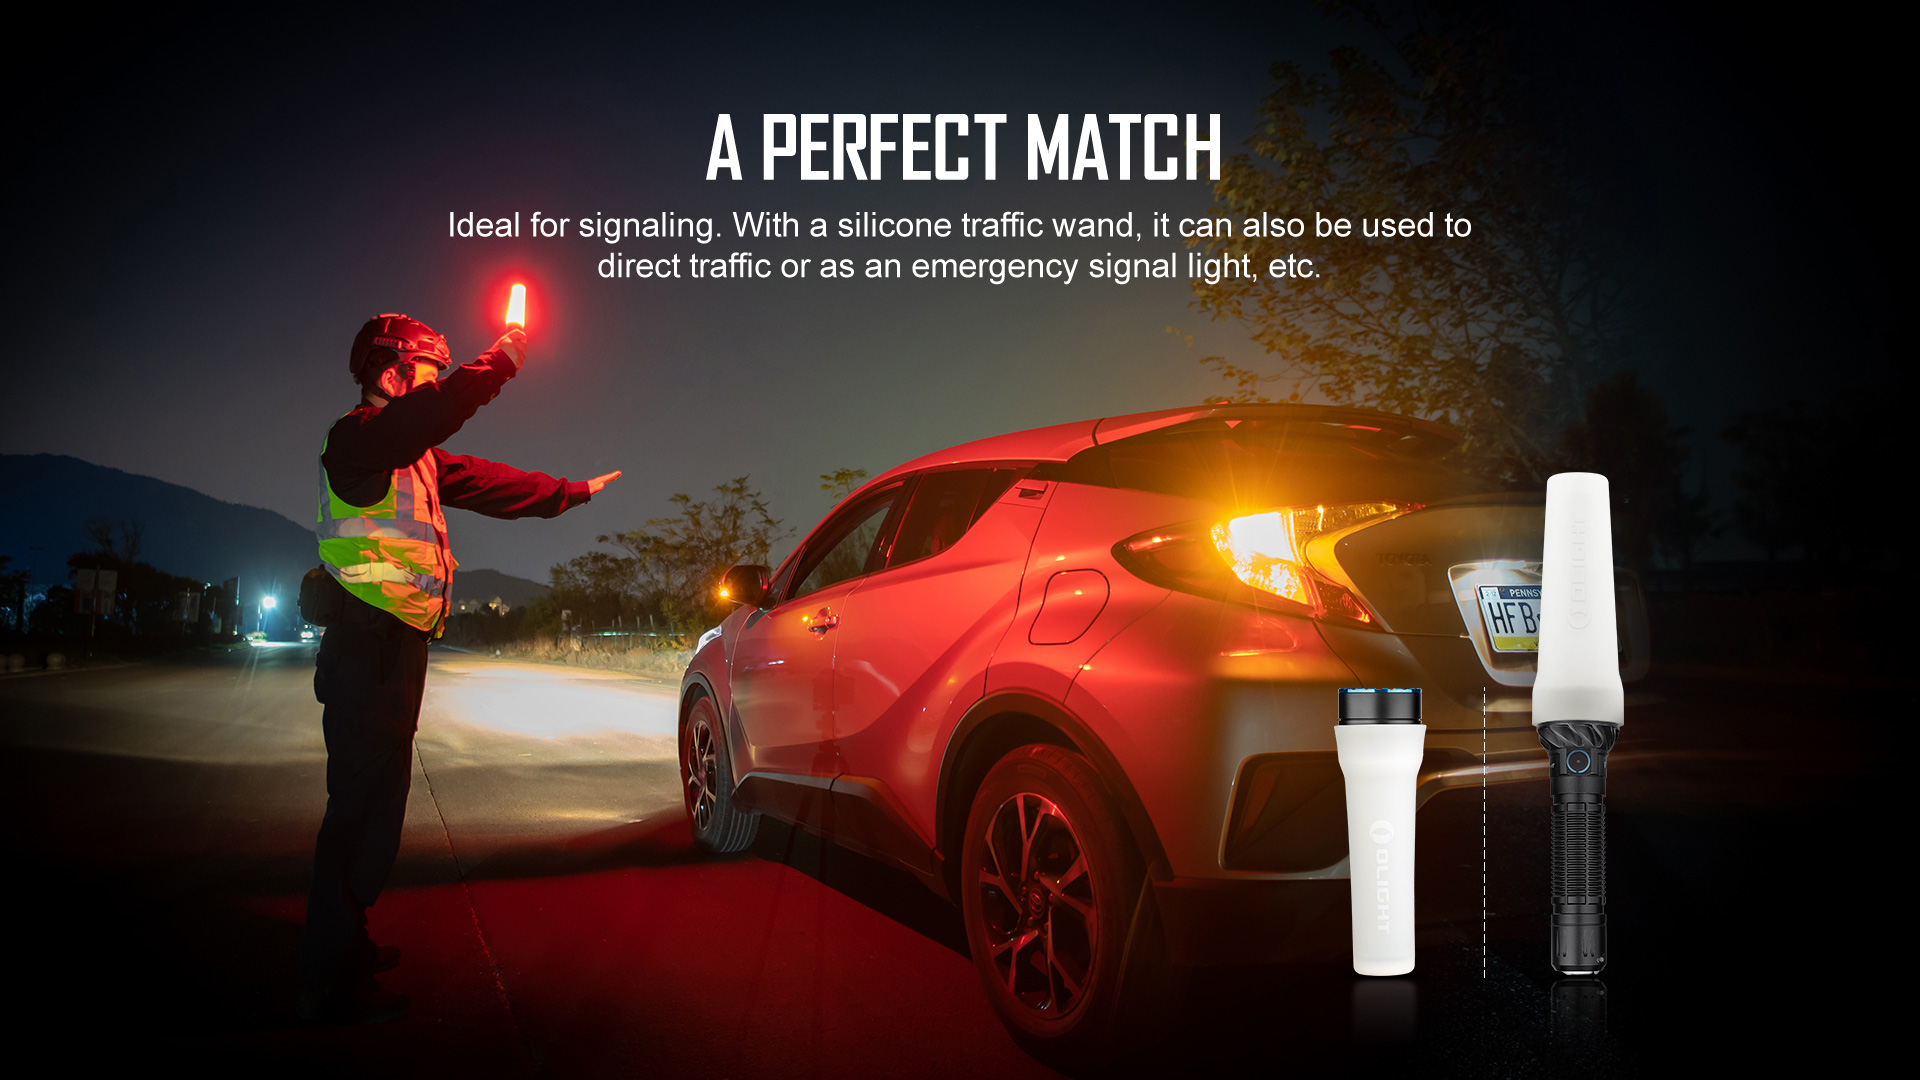 Olight Freyr that can be used as a traffic control light